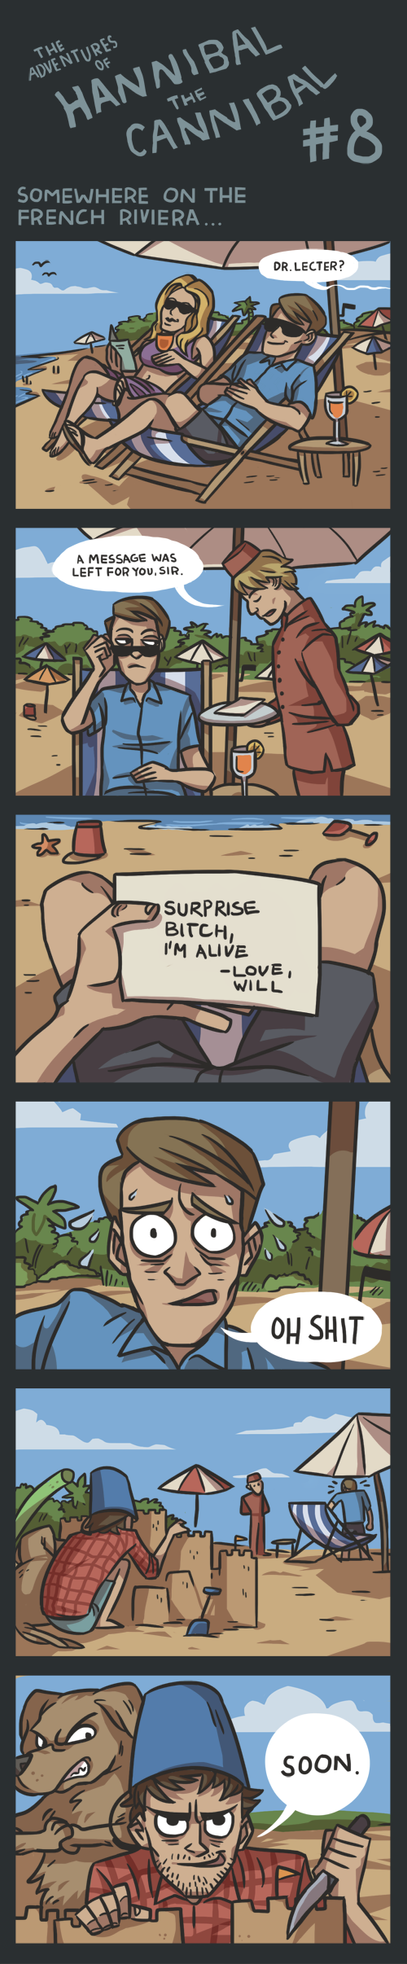 The Adventures of Hannibal the Cannibal #8 by ekzotik